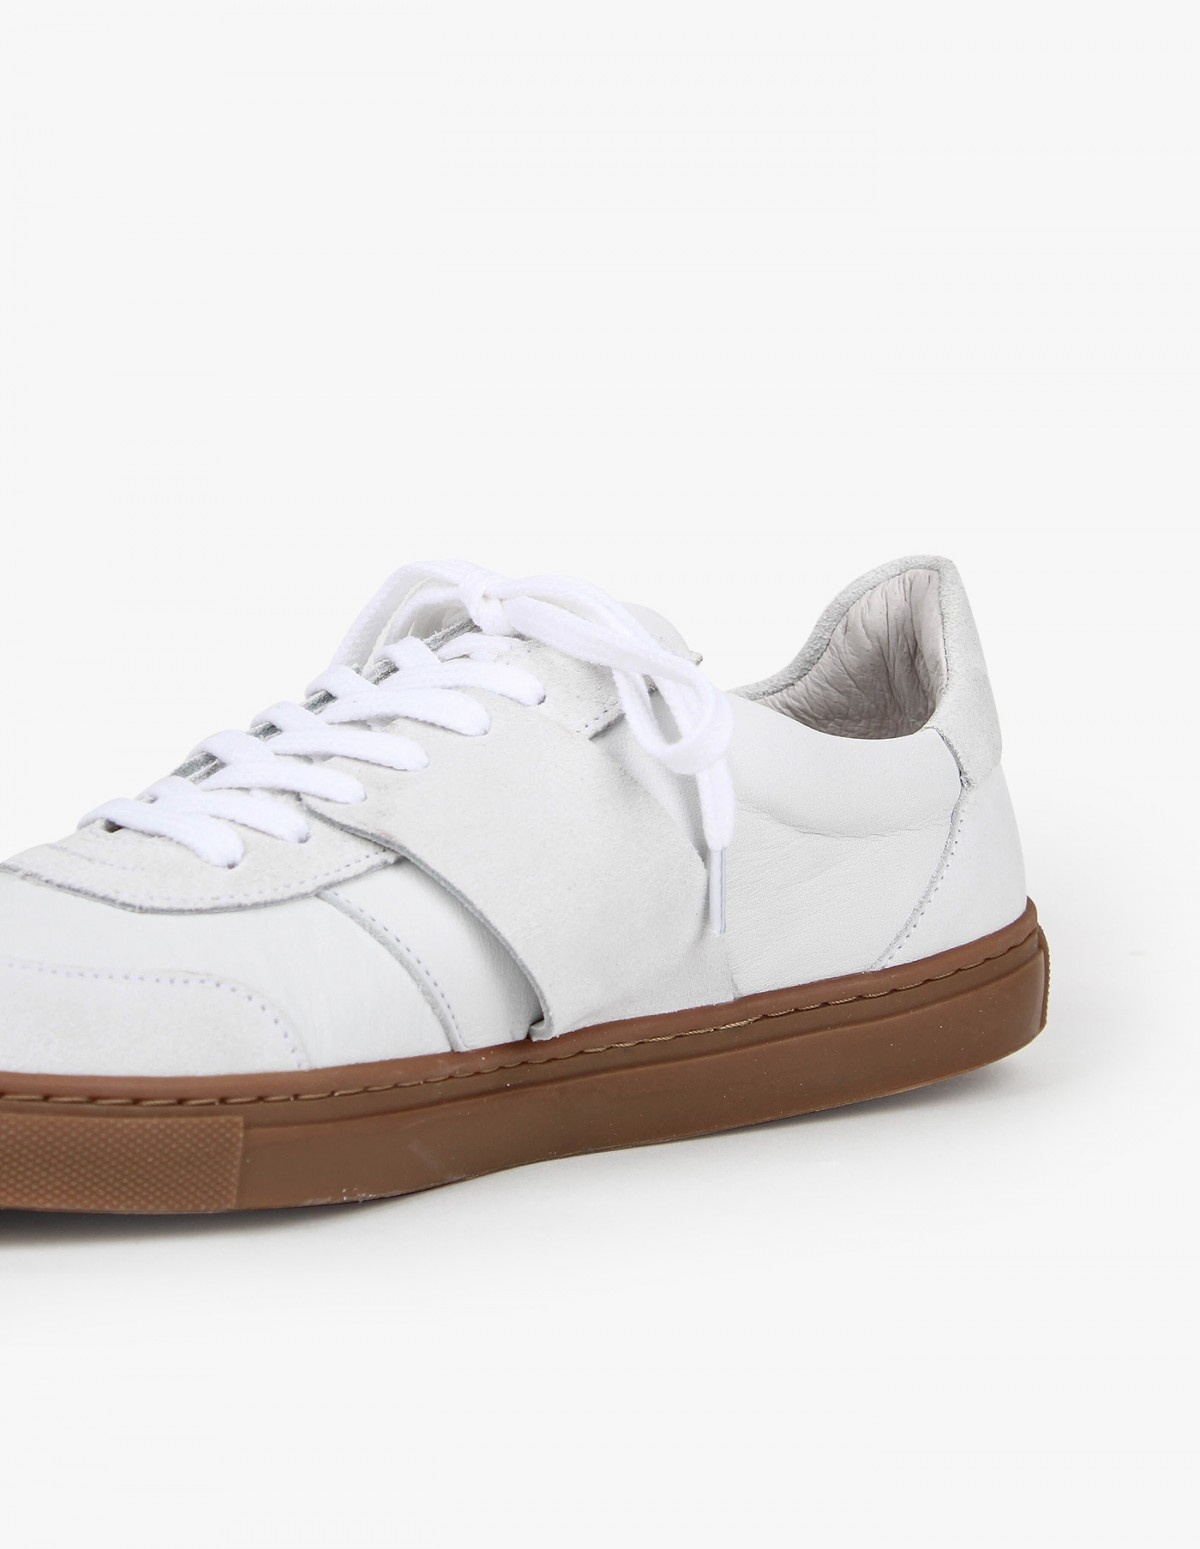 Won Hundred Renee in White Leather/Suede